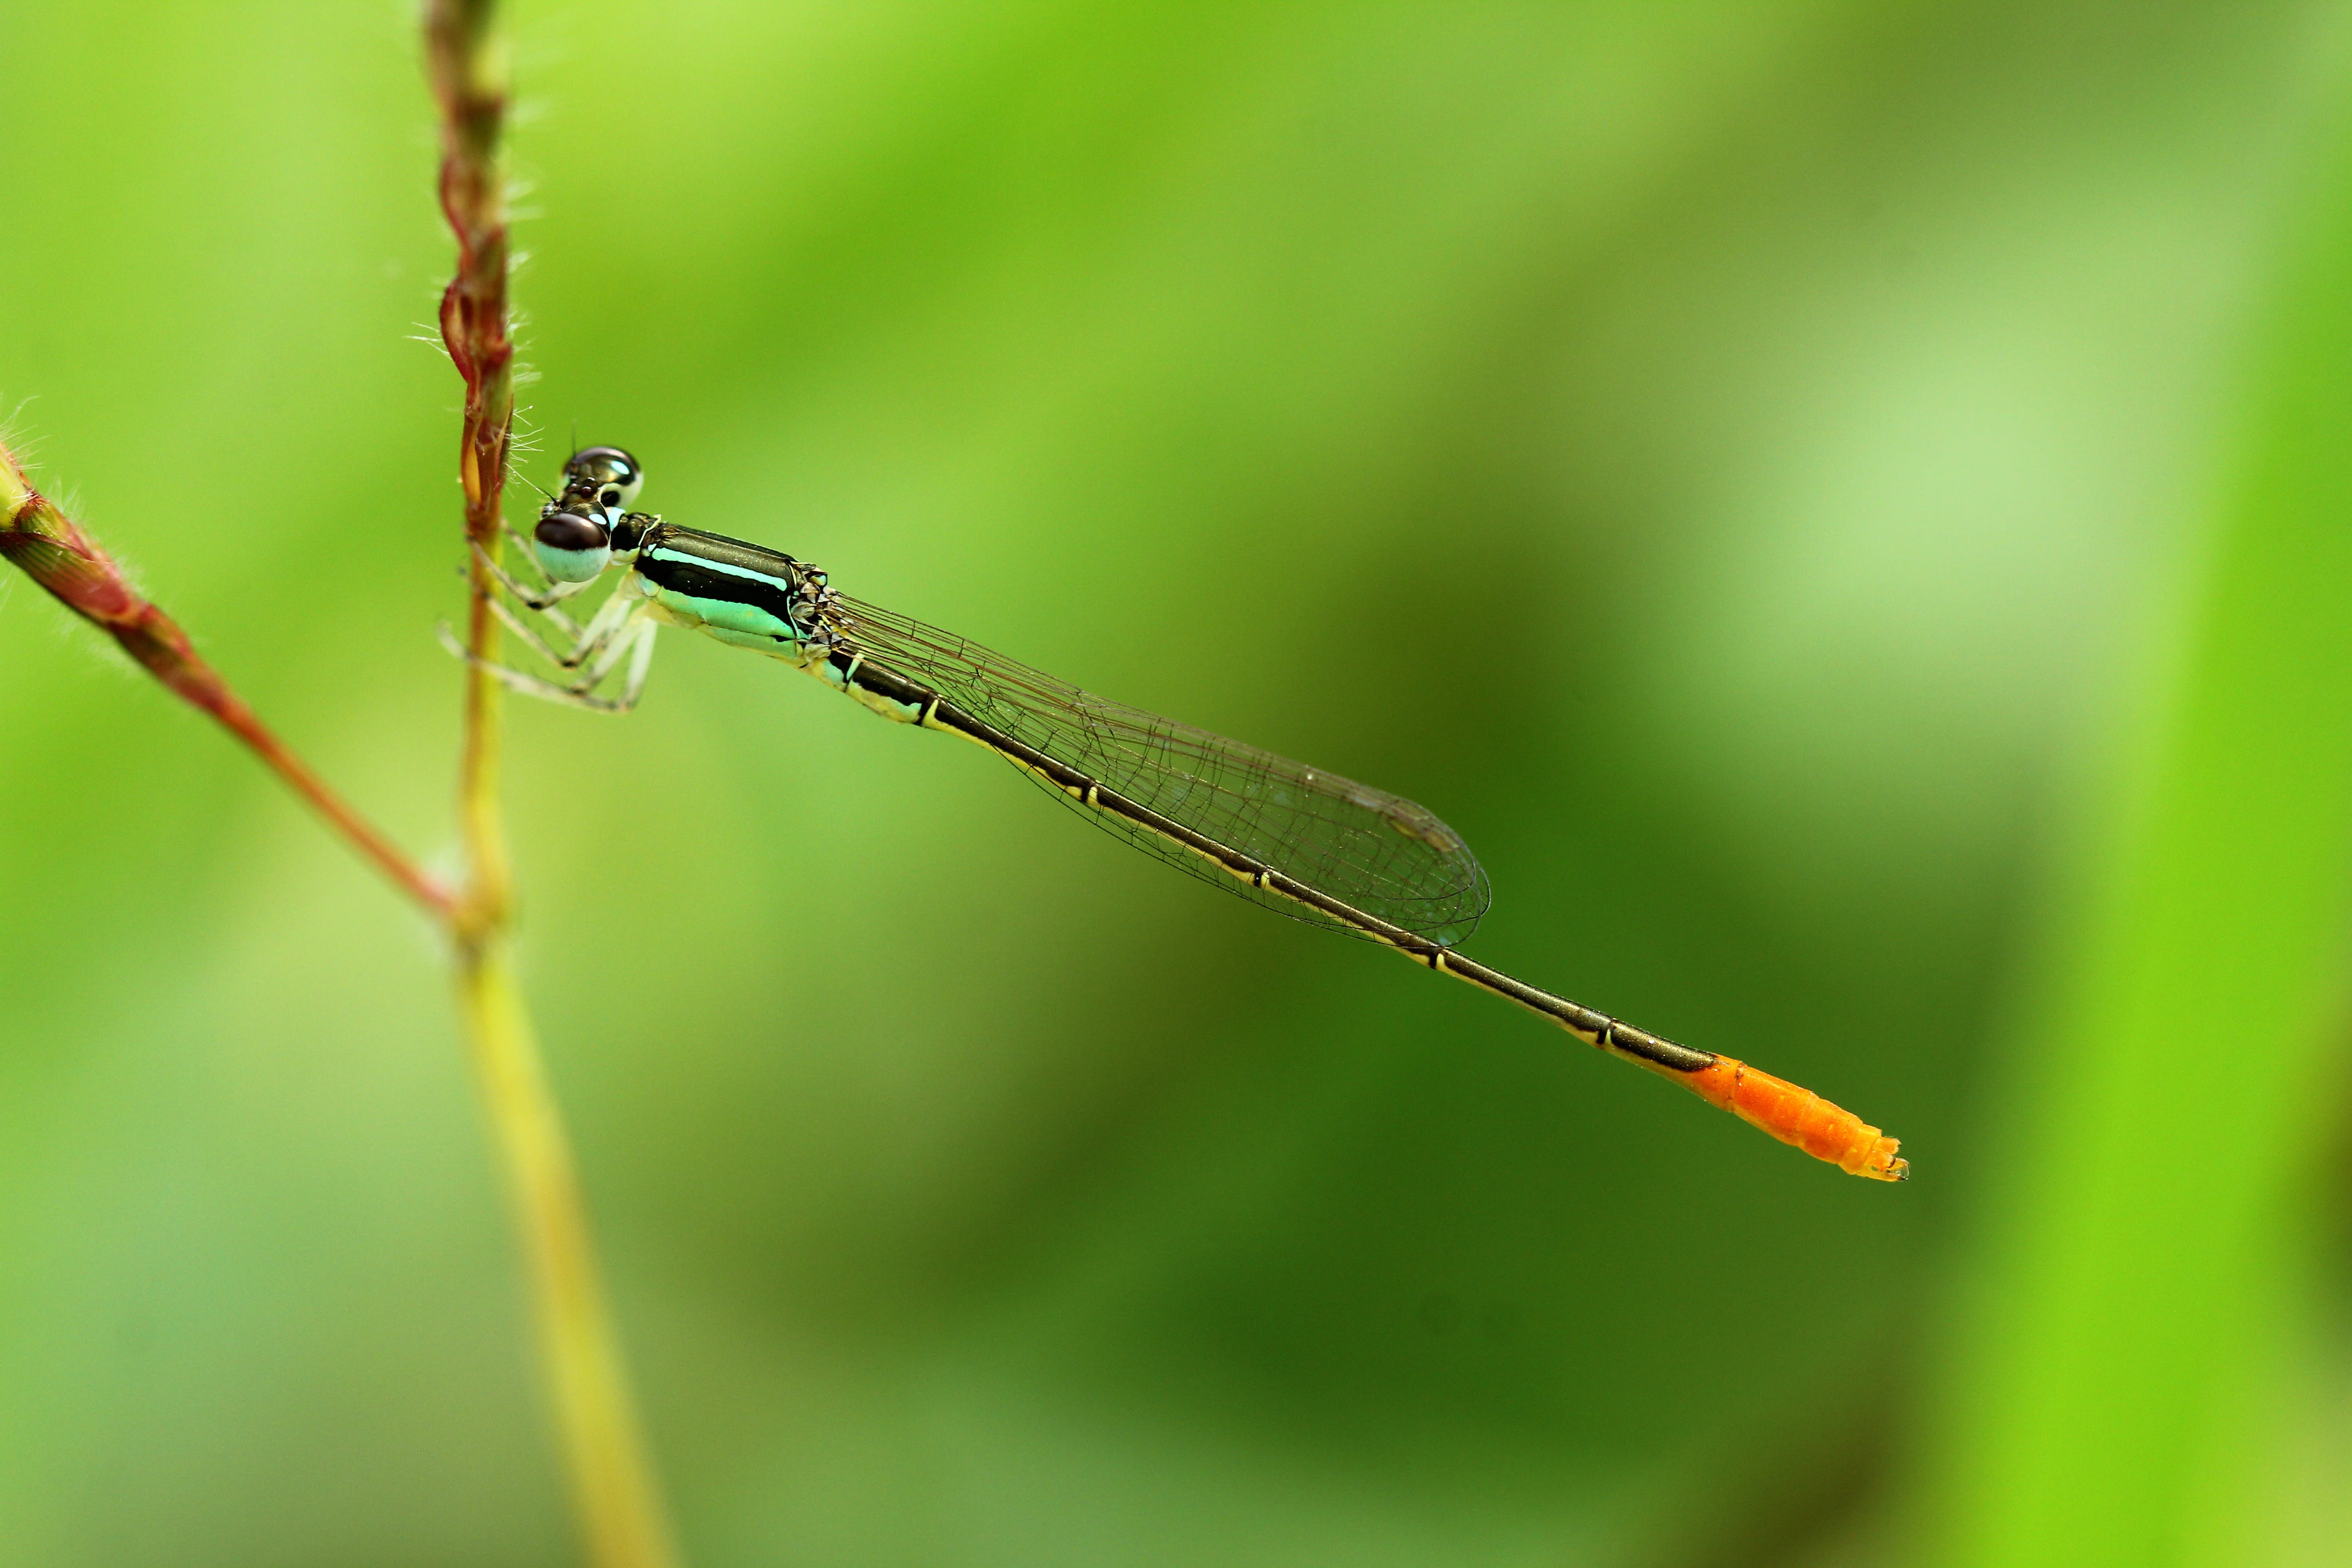 Green Damselfly Perched on Plant Stem at Daytime